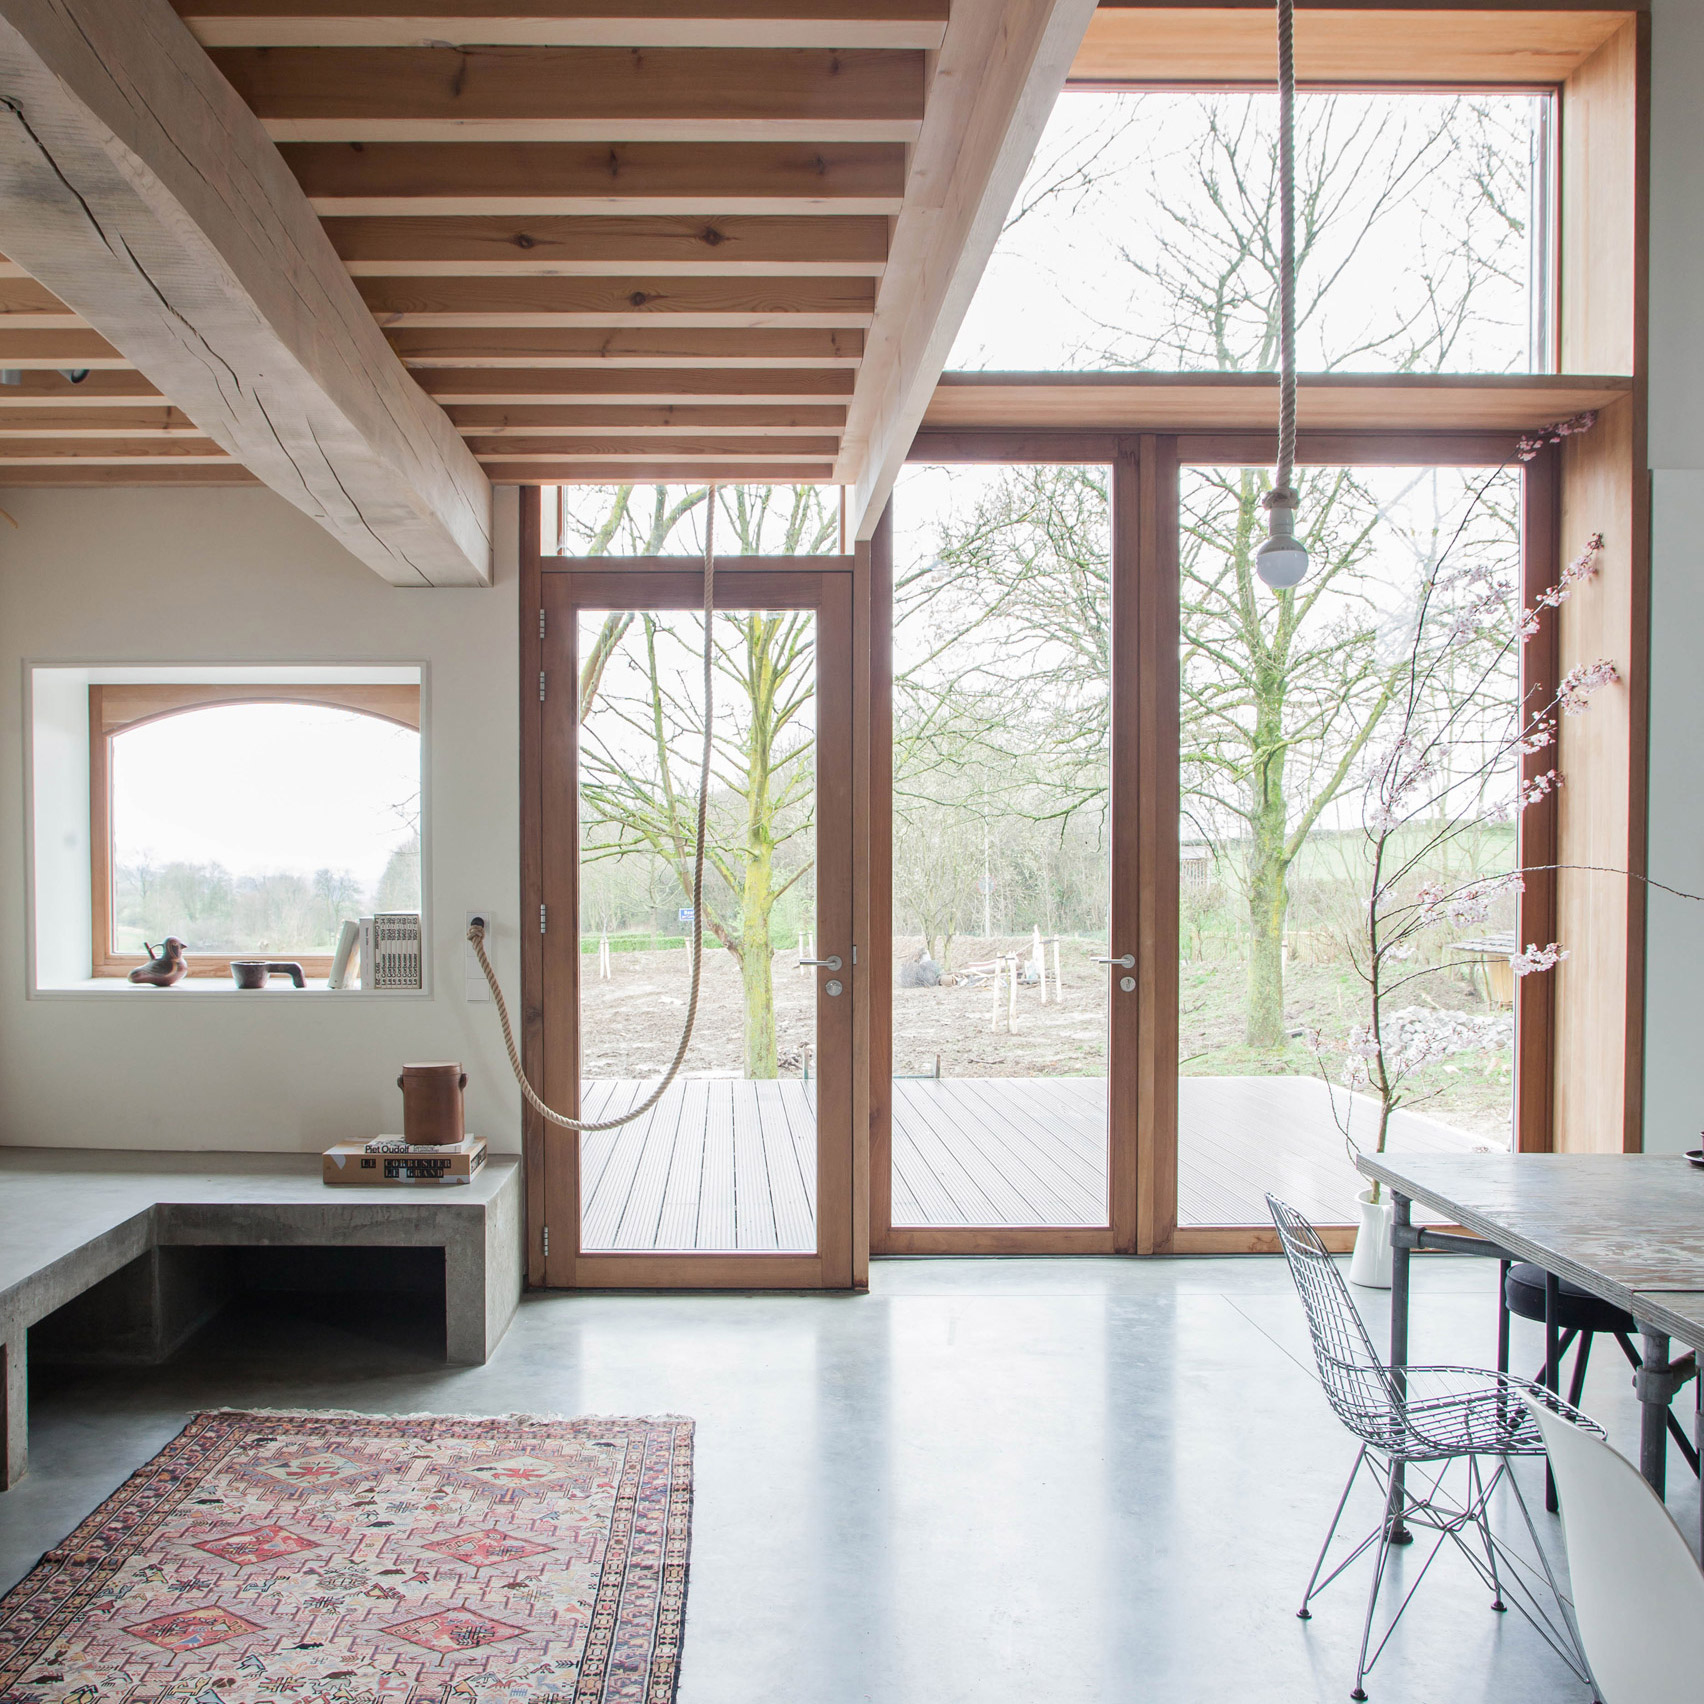 Jeanne dekkers architectuur converts traditional dutch farm into contemporary house and studio